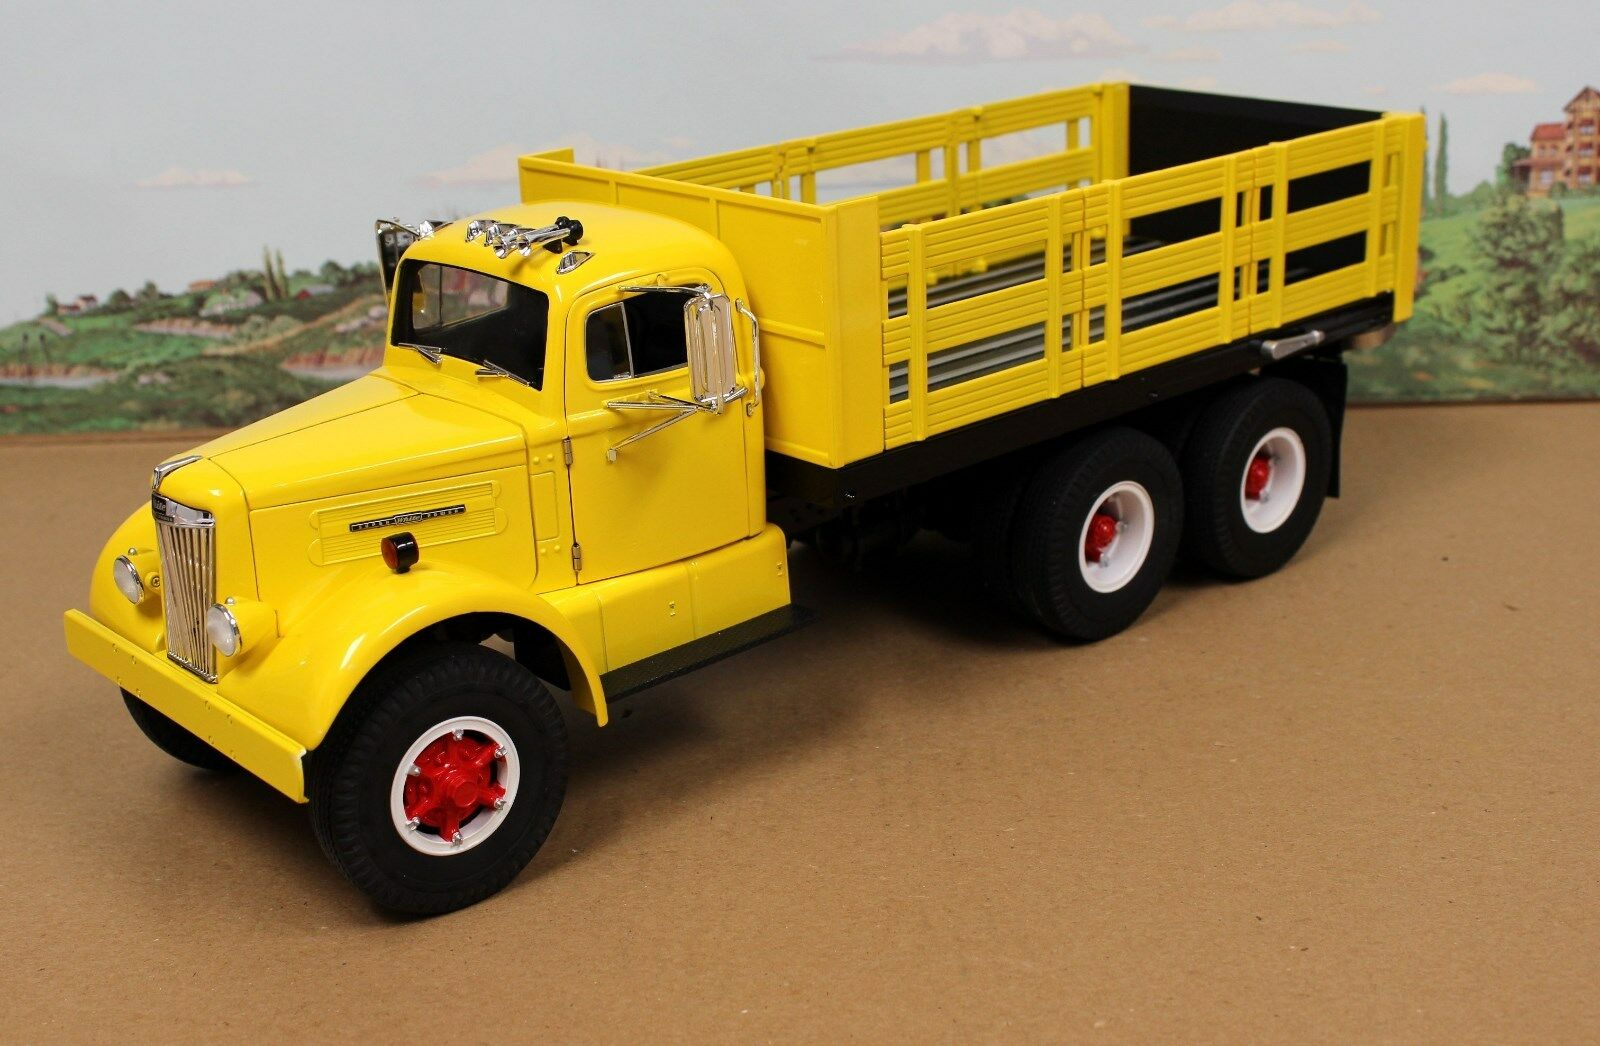 Fumby Street Motors 1957 Blanc WC-22 jeu camion 1 15 Comme neuf IN BOX LTD Edition jaune